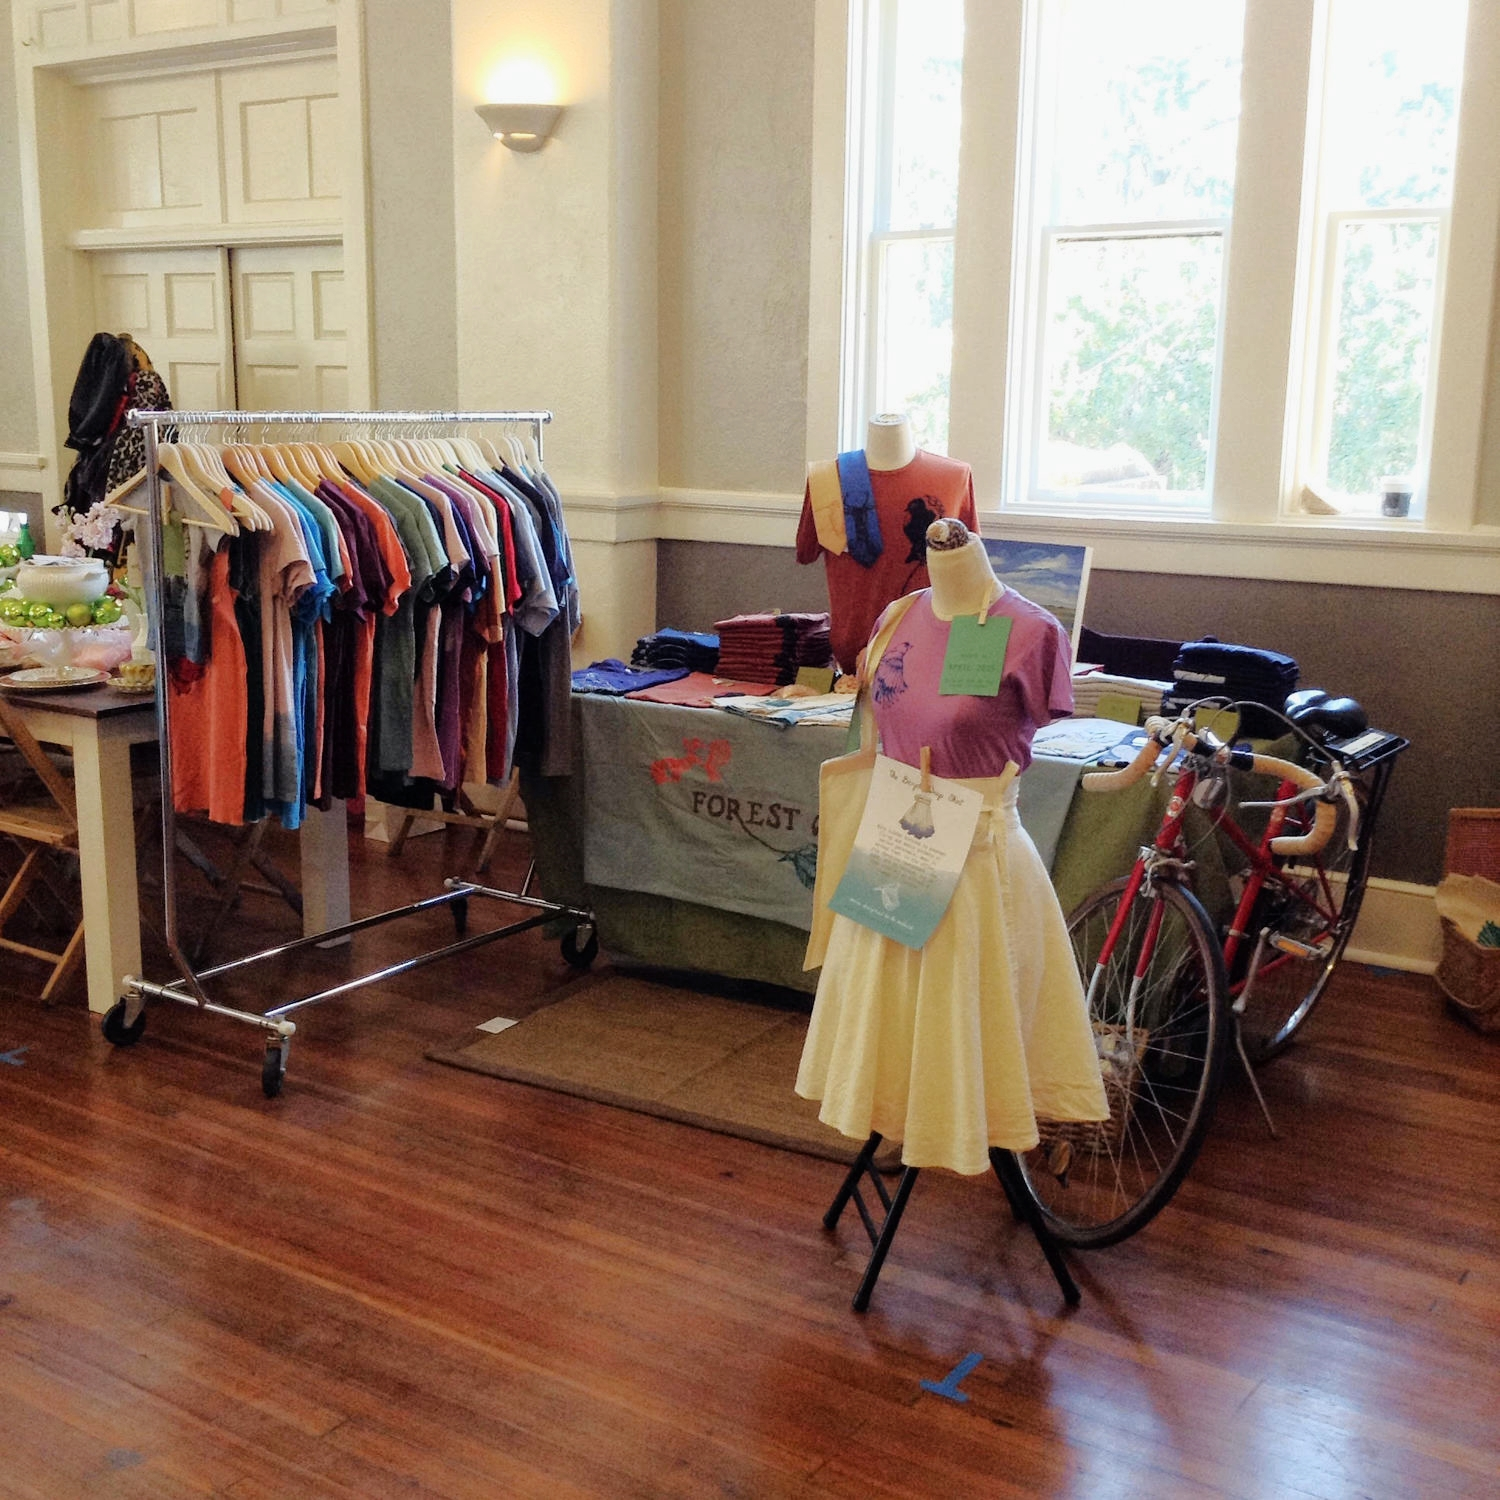 My setup at the Merry Maker Holiday Market on Saturday (after it finally slowed down enough to get a good shot!).